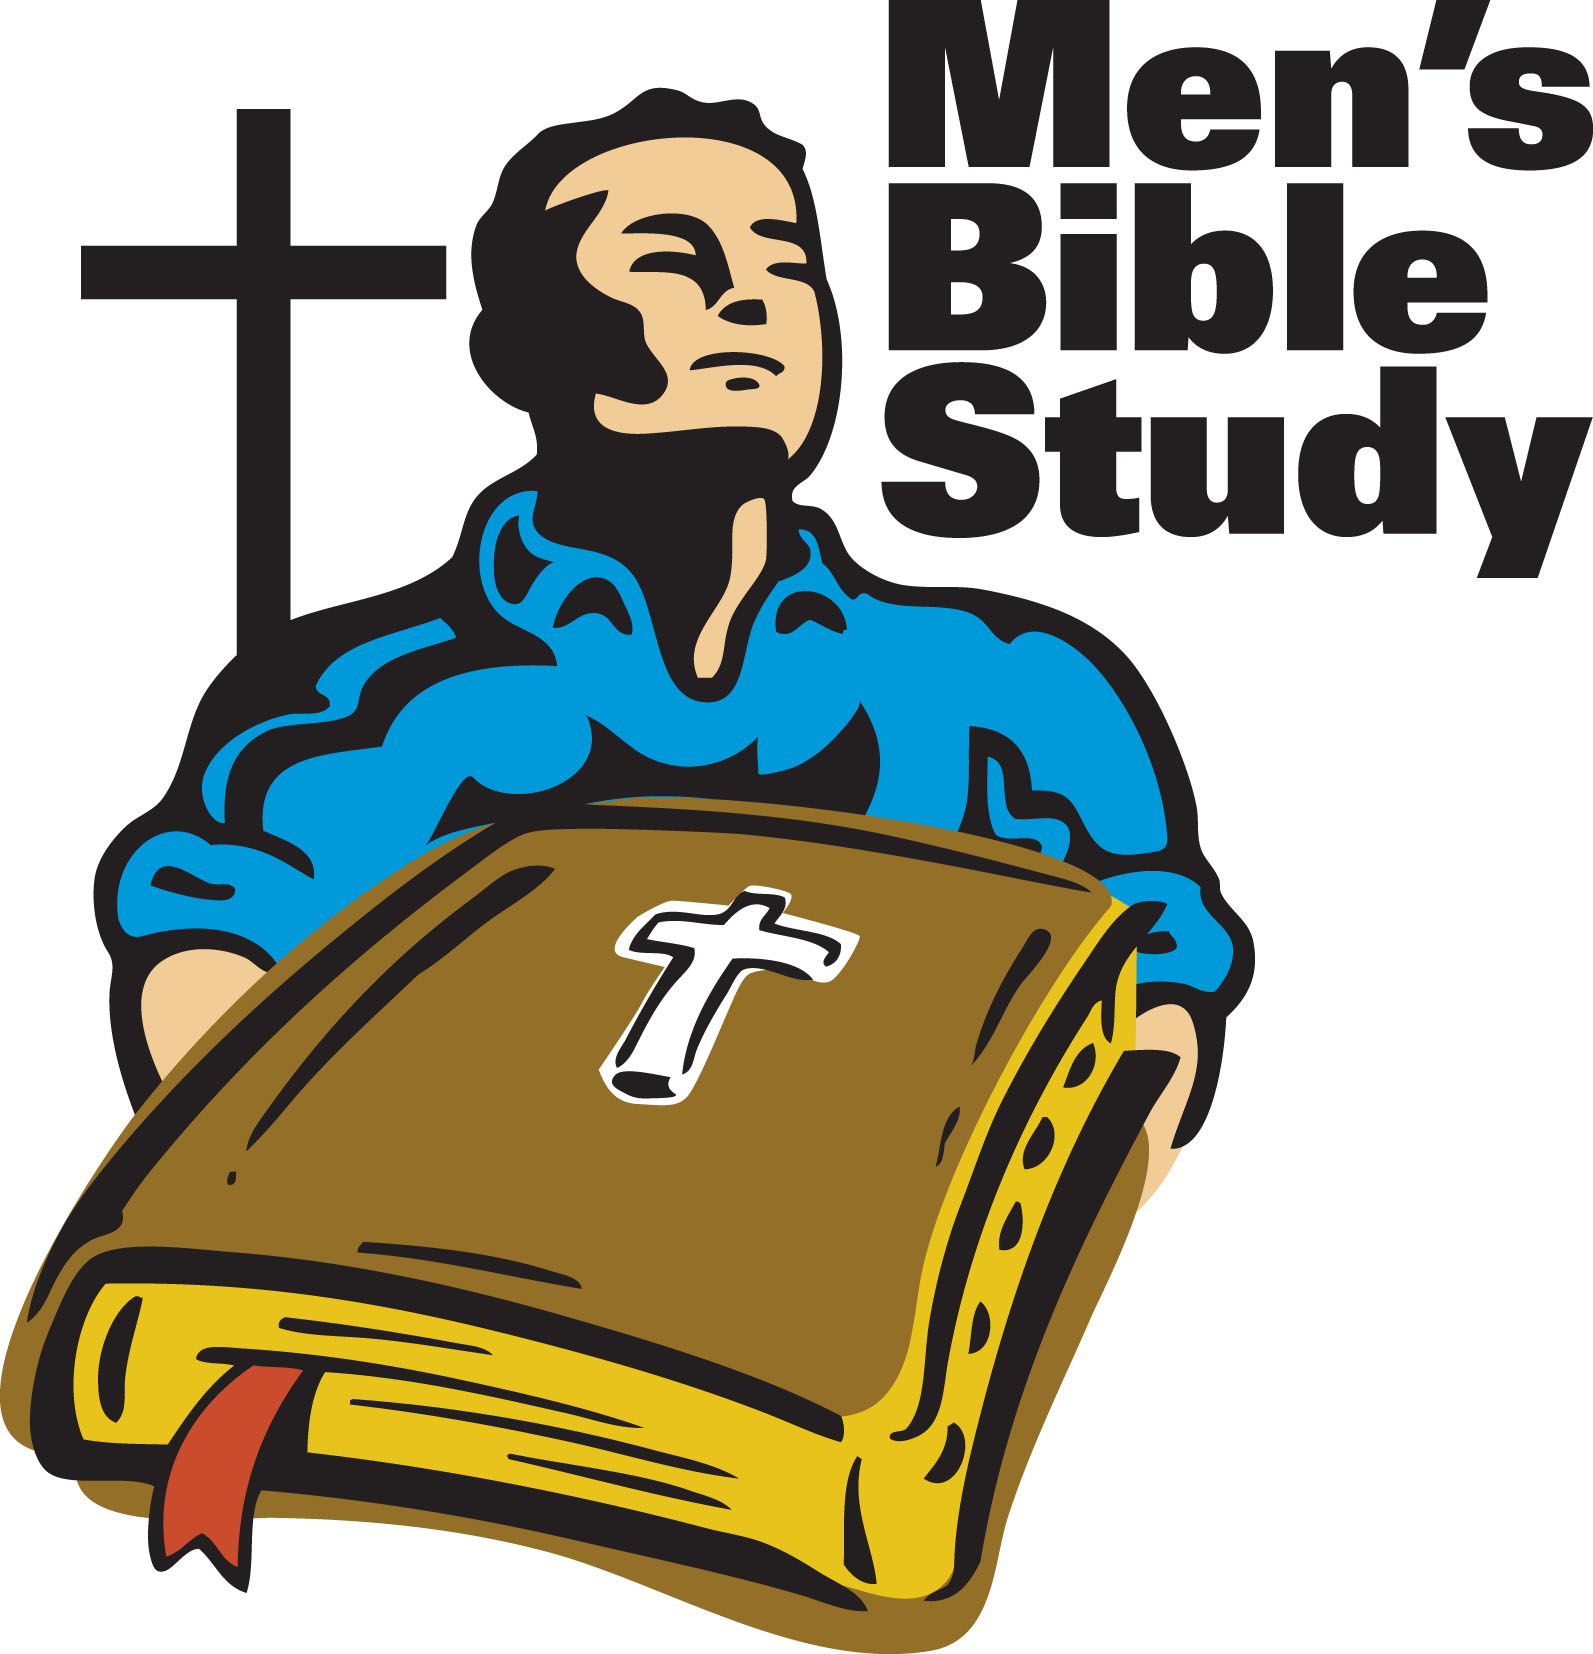 /clientimages/31672/men's%20bible%20study.jpg